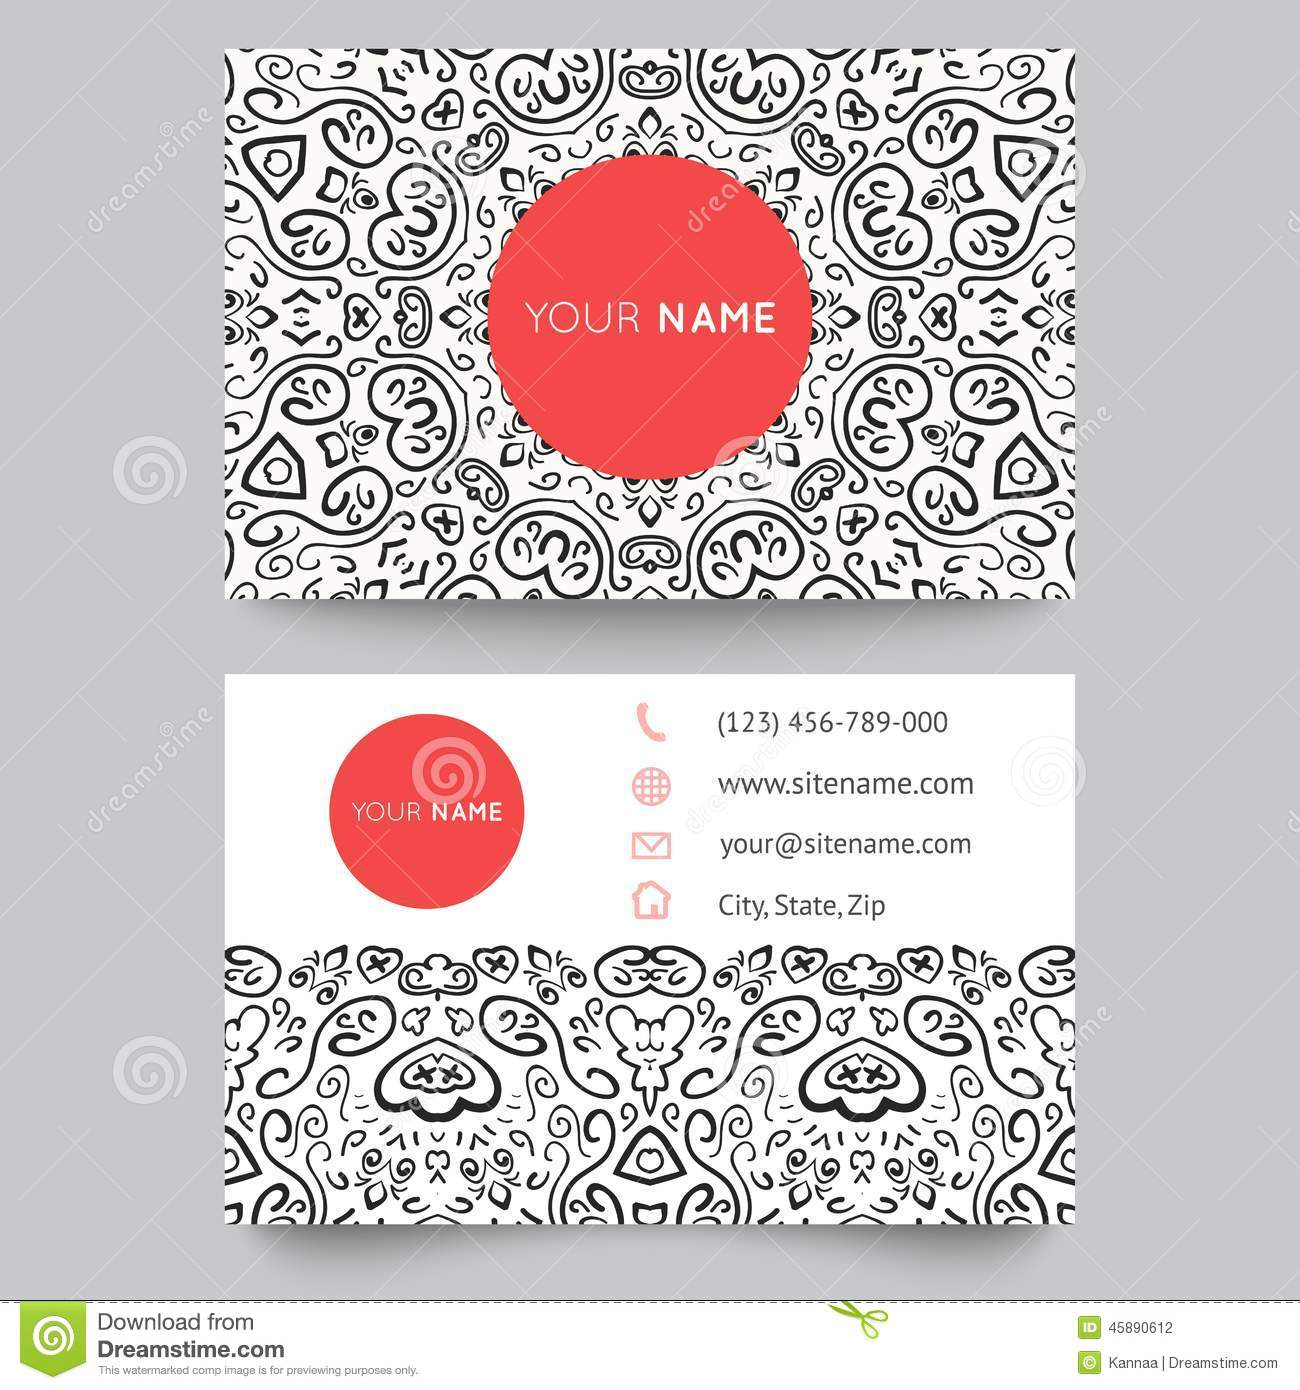 Business card template black red and white stock vector business card template black red and white flashek Gallery